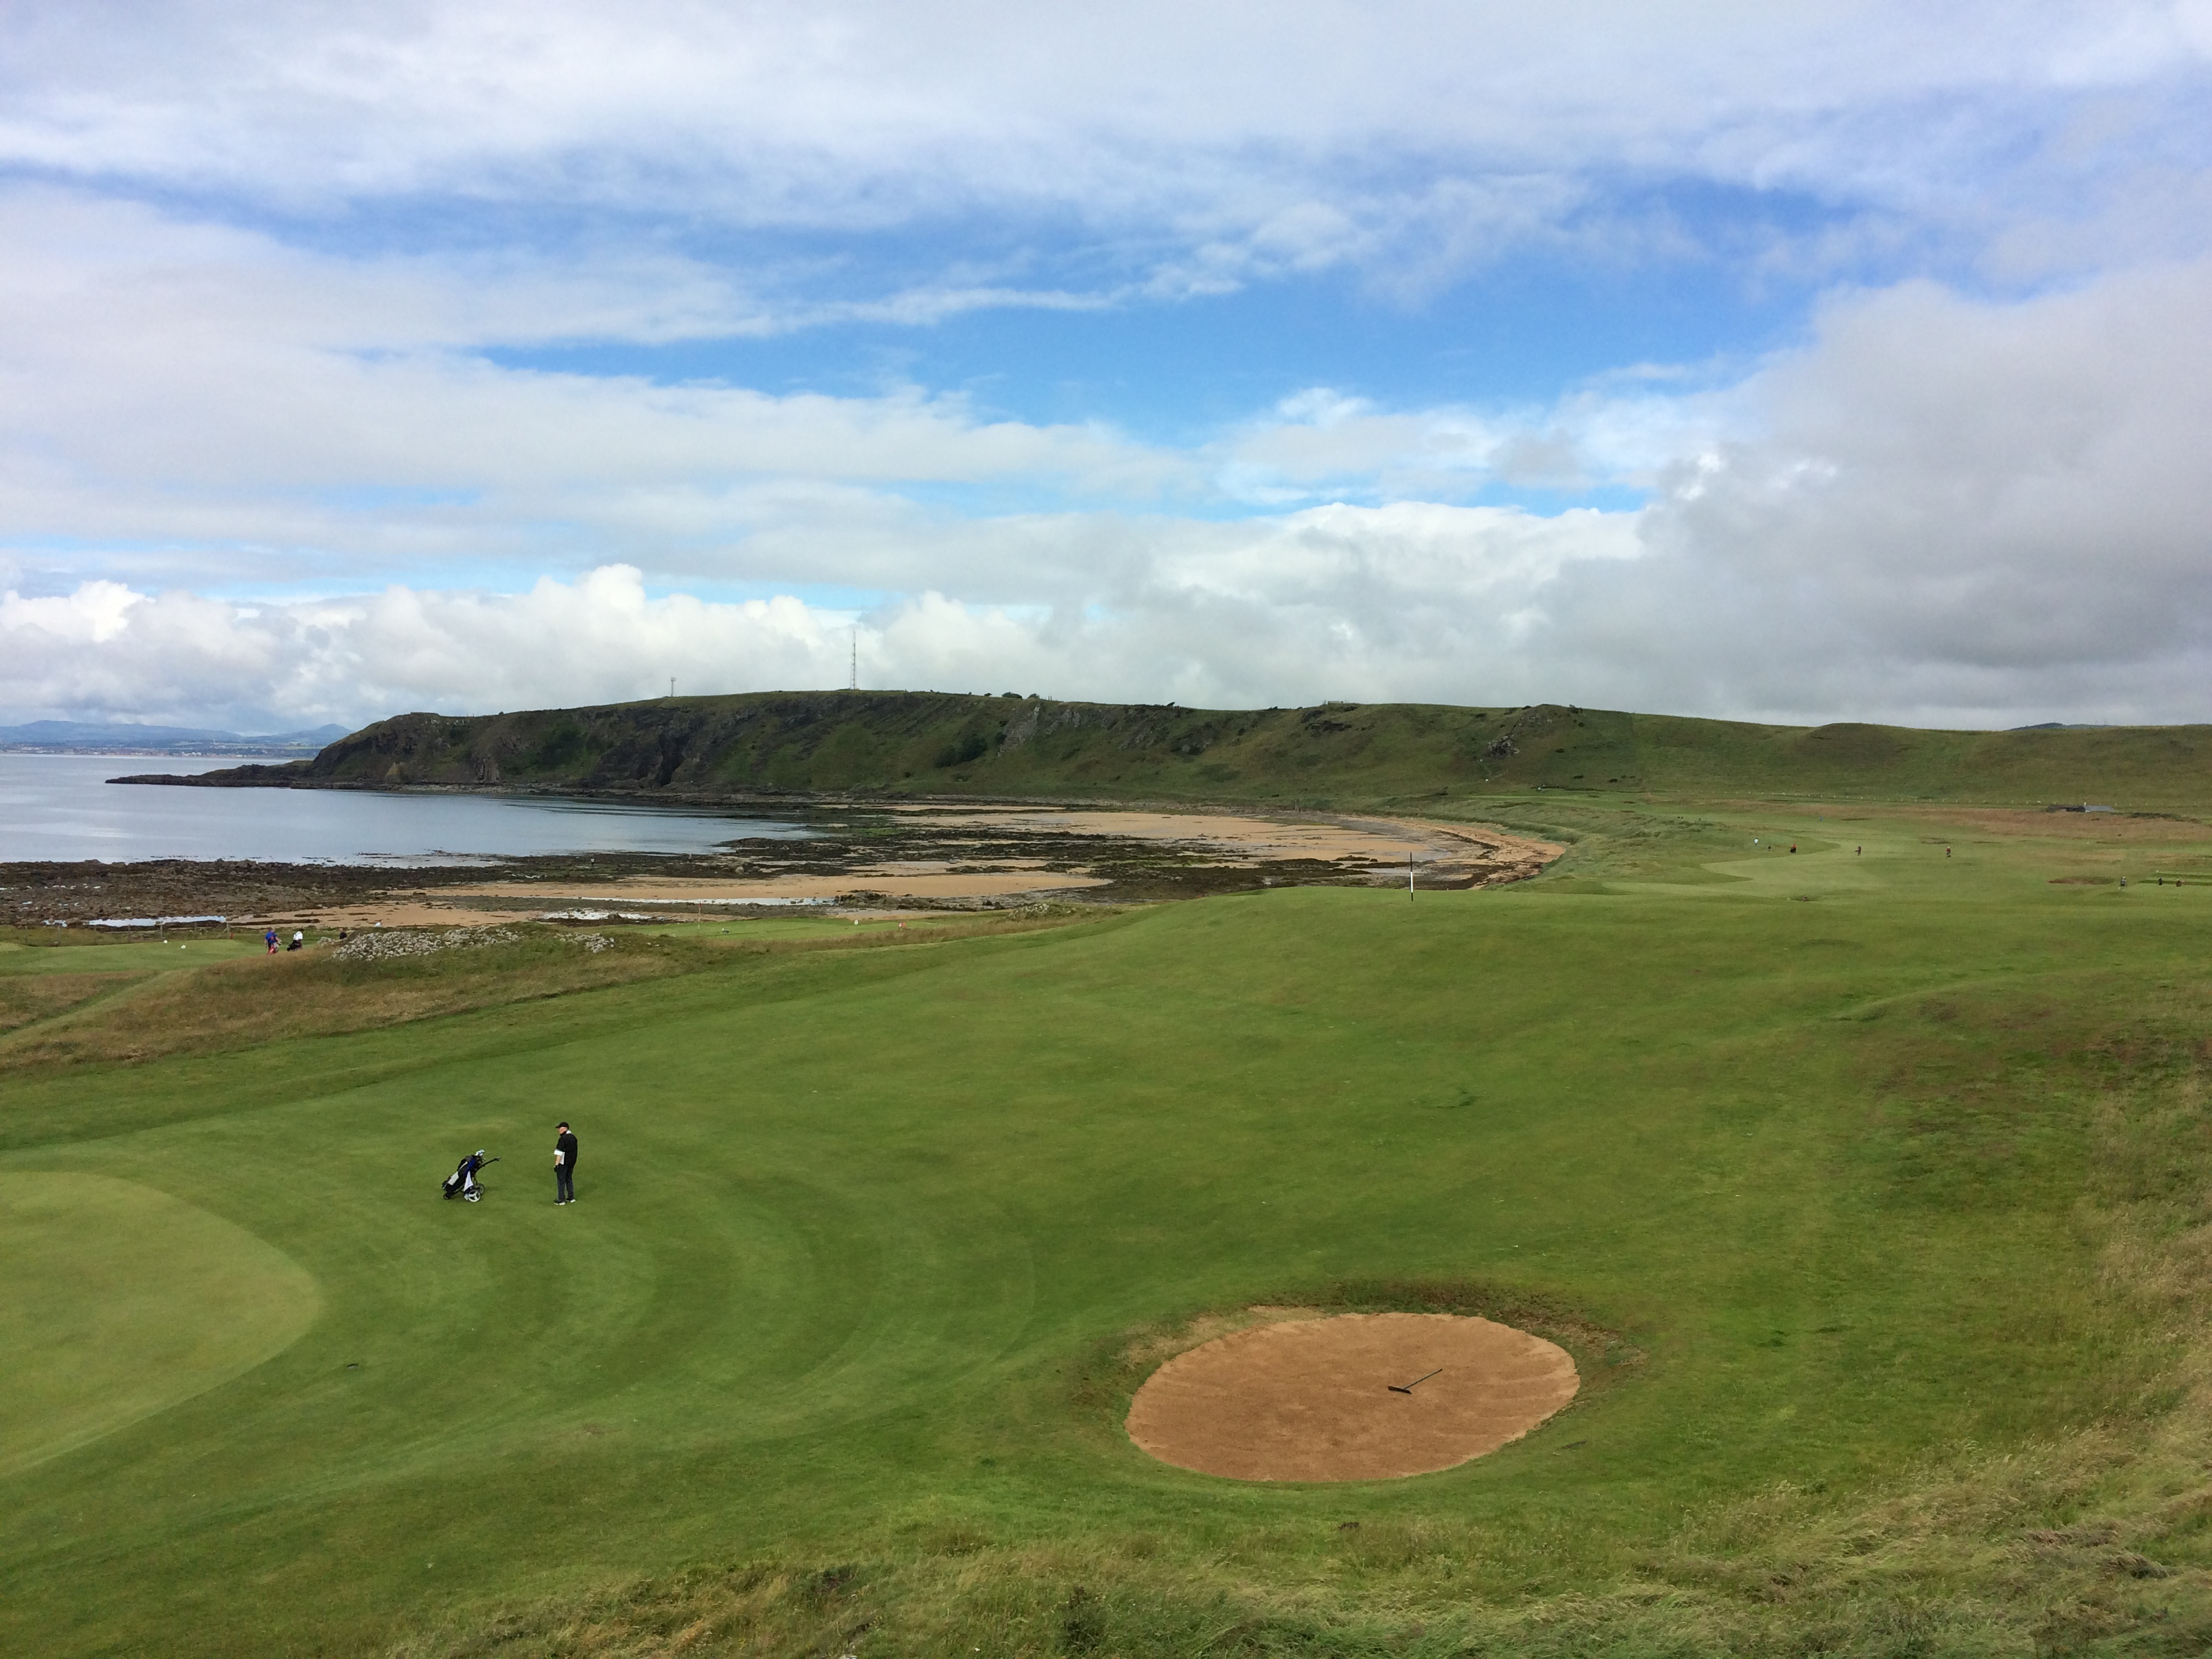 Elie's 10th hole features a blind drive over the brow of a hill